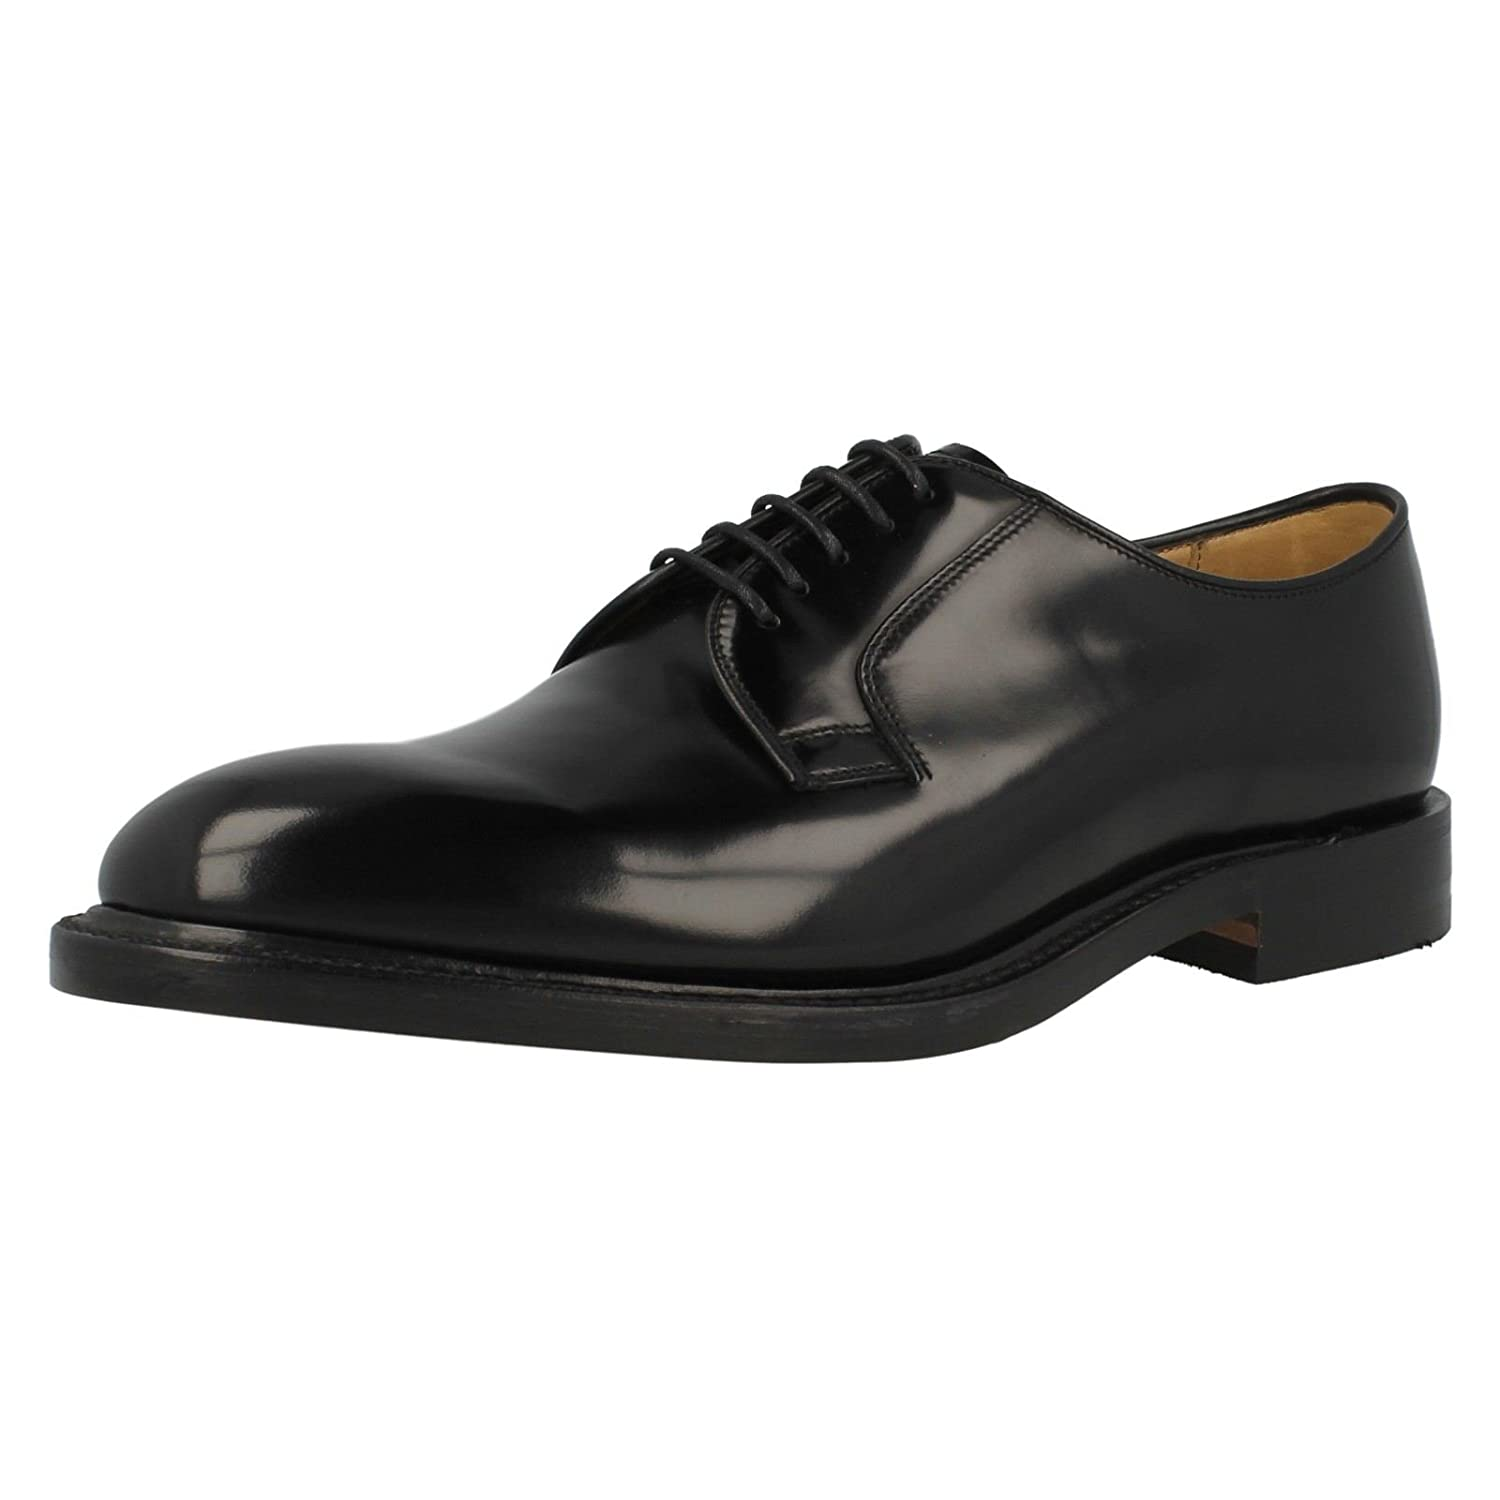 b1c55aa0 Loake Made in England Skin Mod Leather Long Wing Royal Lace Up Brogue Shoe  Black 12: Amazon.co.uk: Shoes & Bags